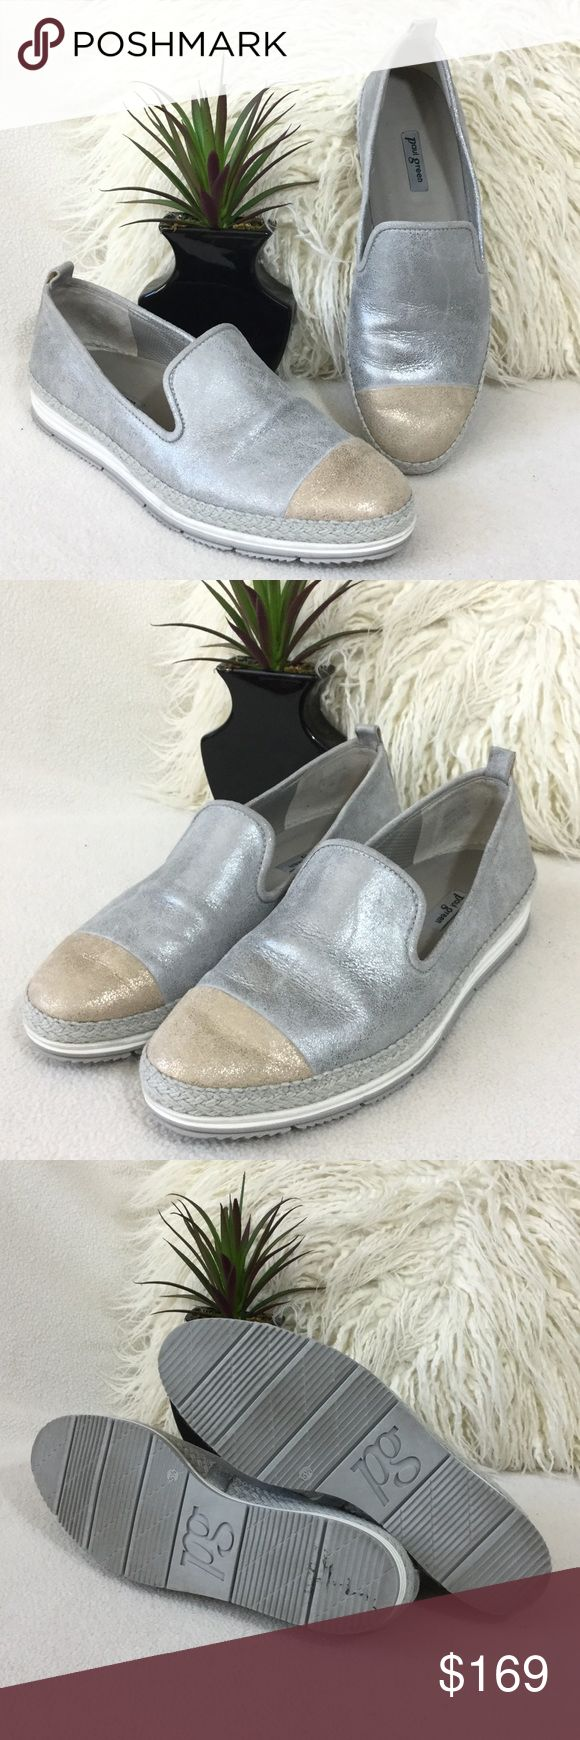 """Paul Green Leather espadrille slip-on sneakers Paul Green crackled silver Leather with champagne leather gold toe espadrille slip-on sneakers. Super comfortable and stylish.  Fits 8.5 just right. Insoles measure 10"""" long. Gently loved and in wonderful condition. 916-750 Paul Green Shoes Flats & Loafers"""